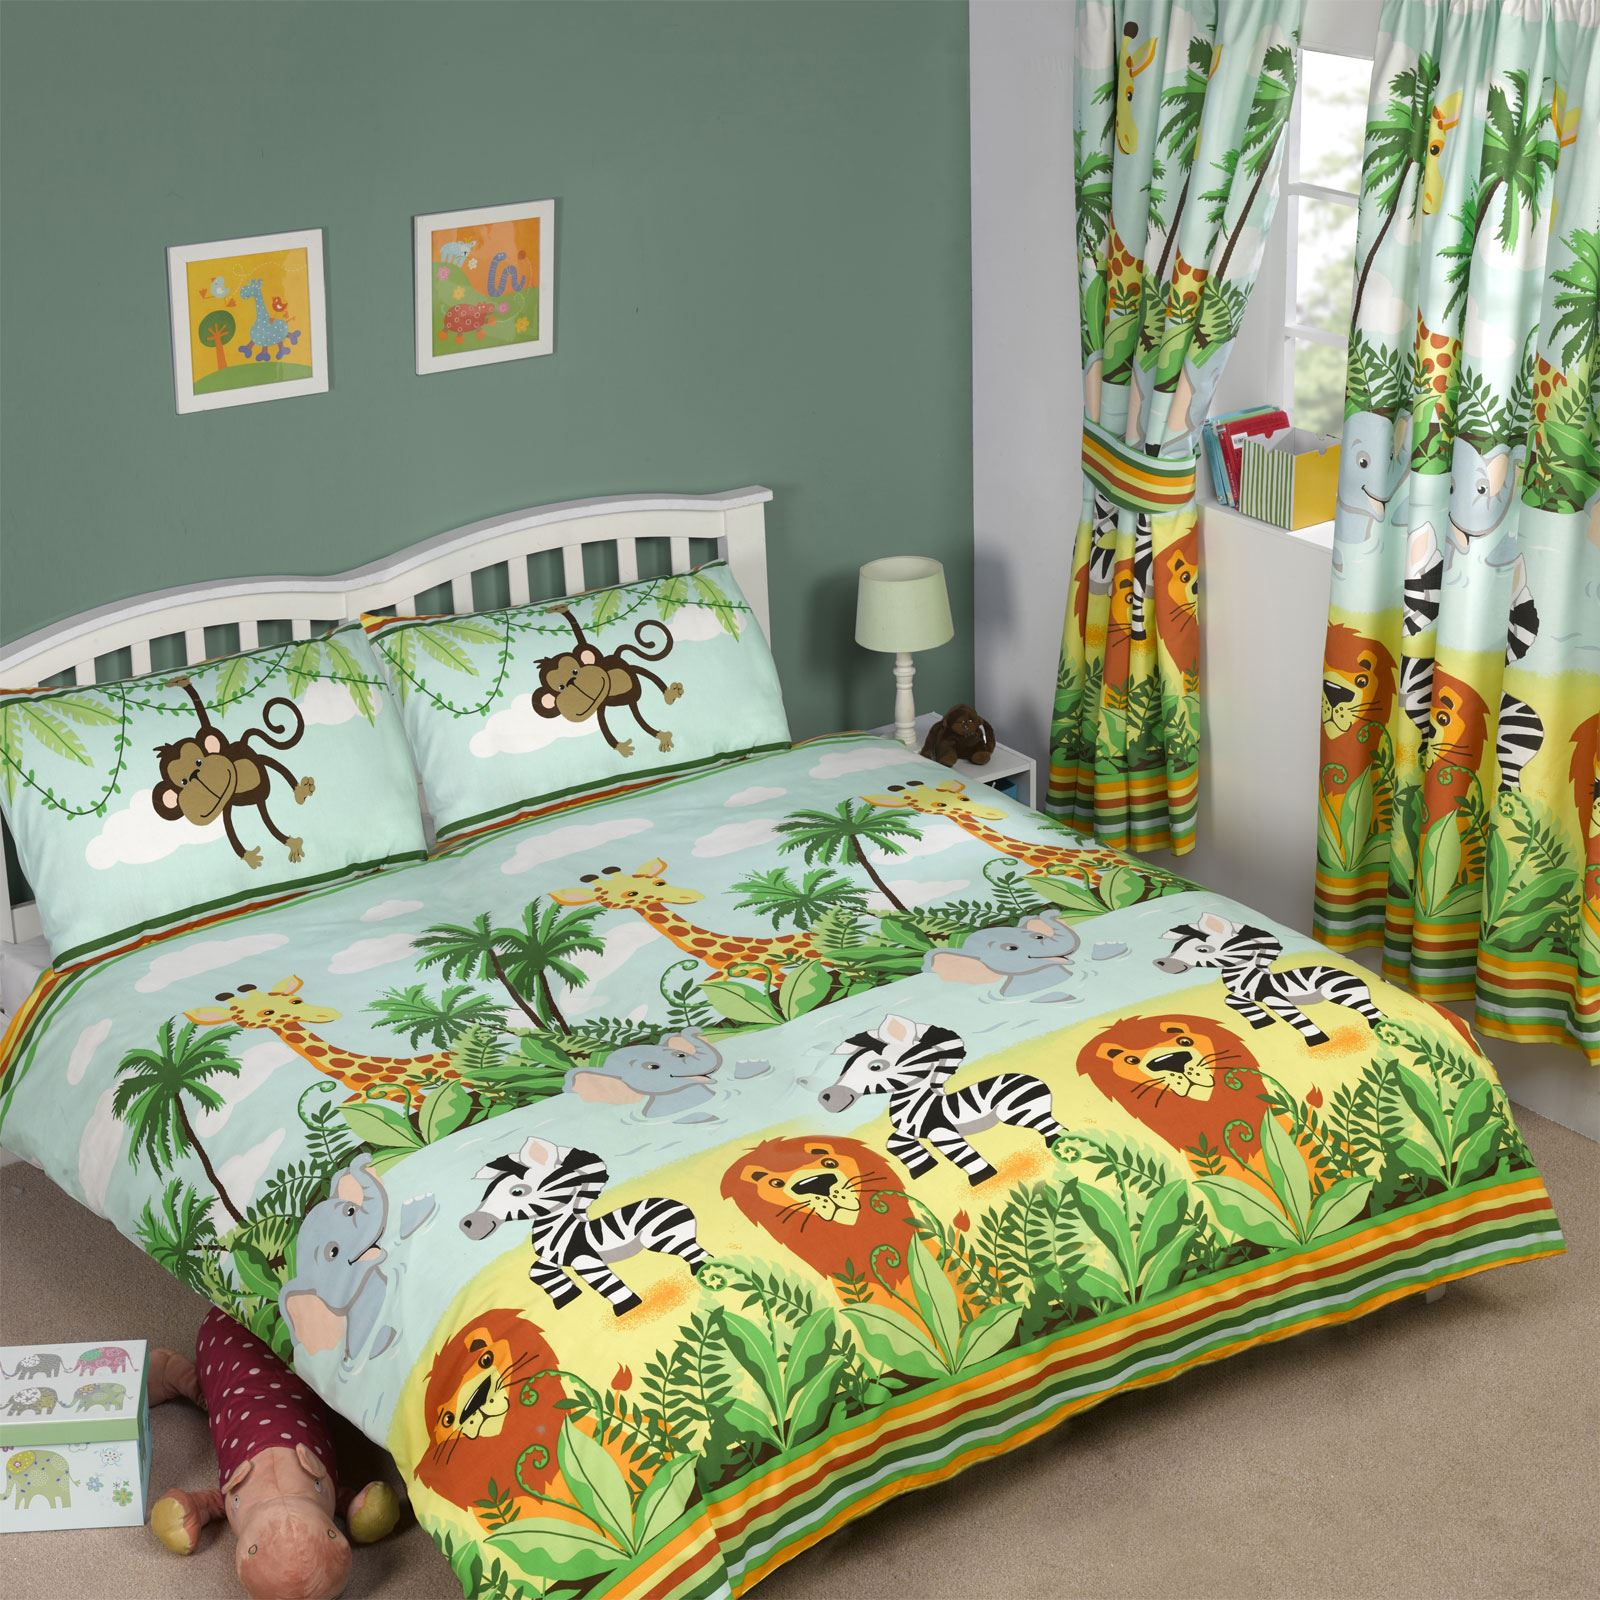 Jungle tastic gamma camera da letto ragazzi single doppio for Camera letto jungle